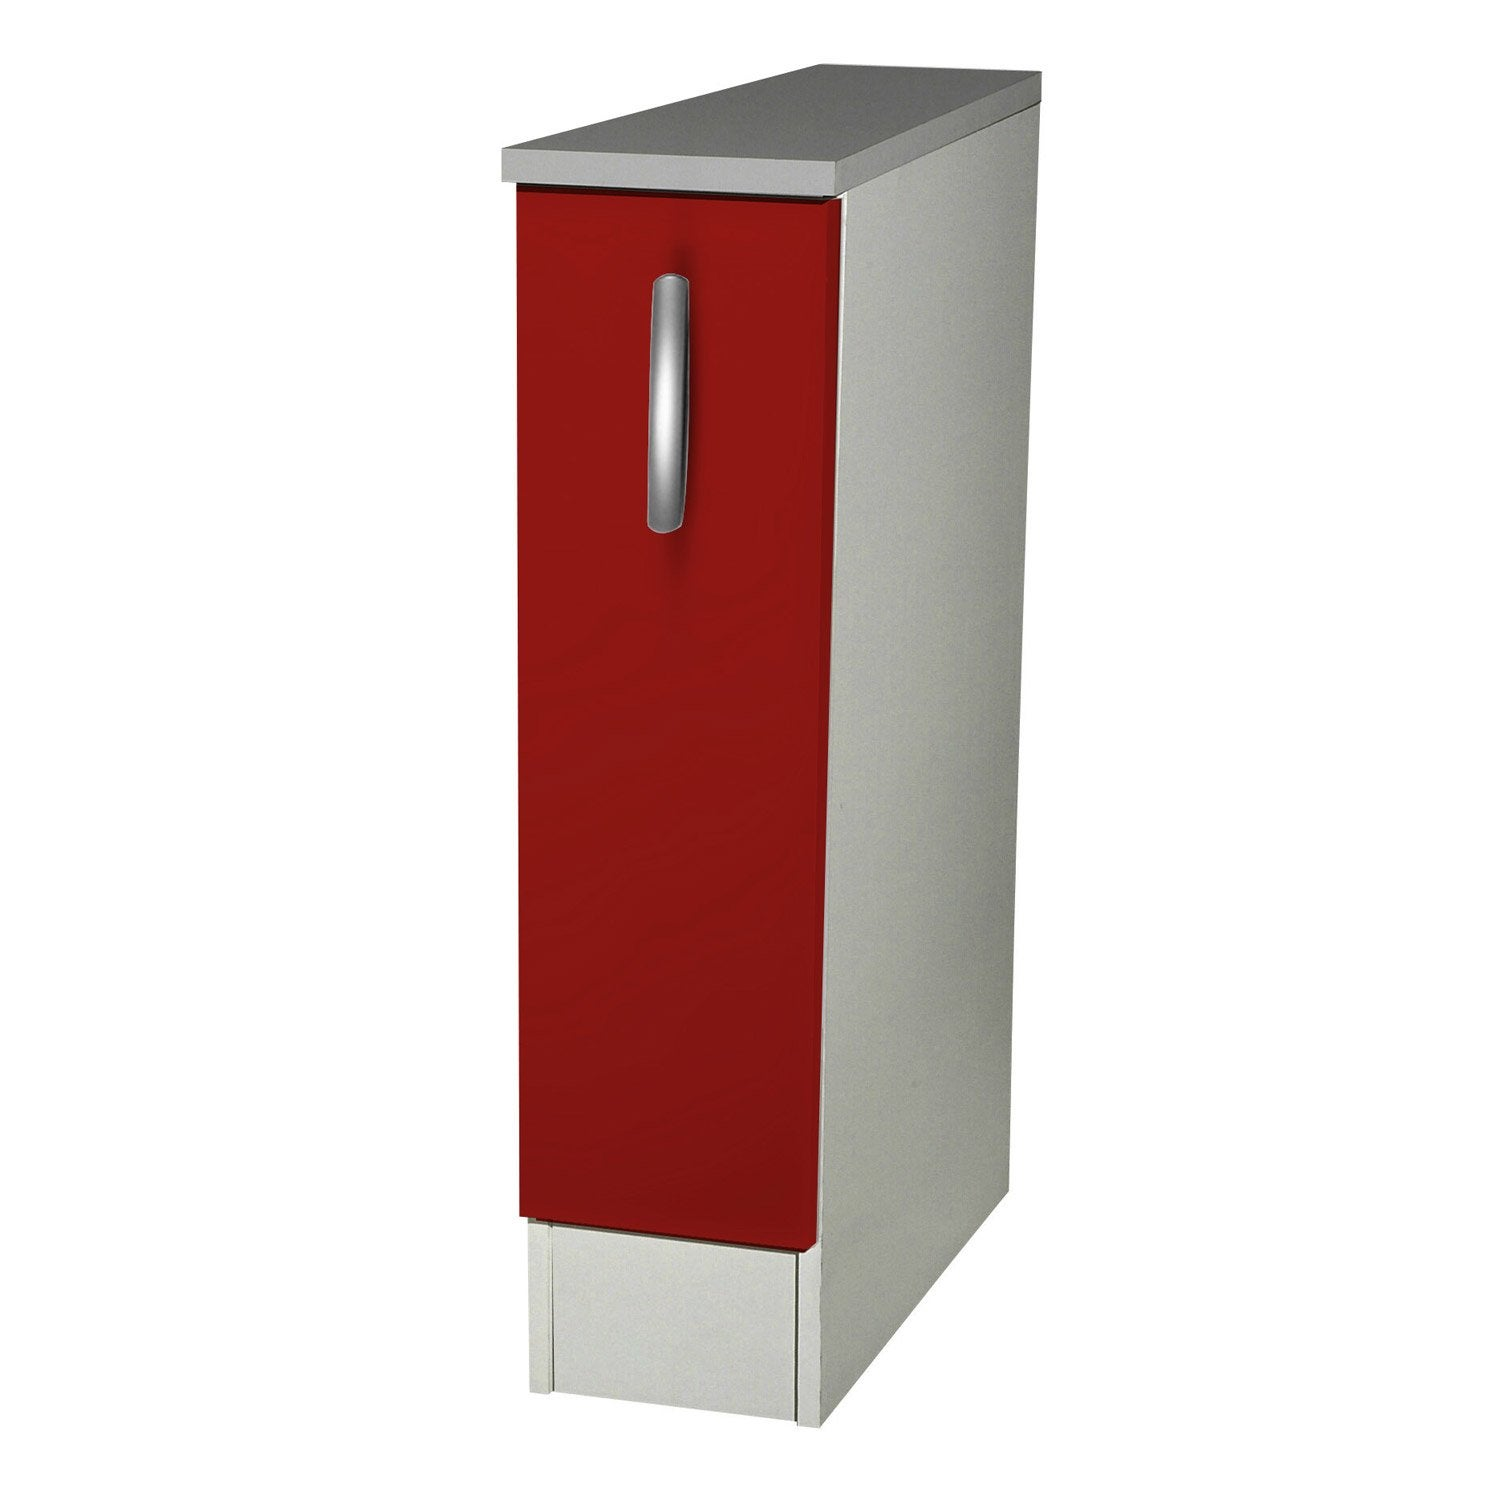 Meuble de cuisine bas 1 porte rouge h86 x l15 x p60 cm for Portes elements cuisine leroy merlin